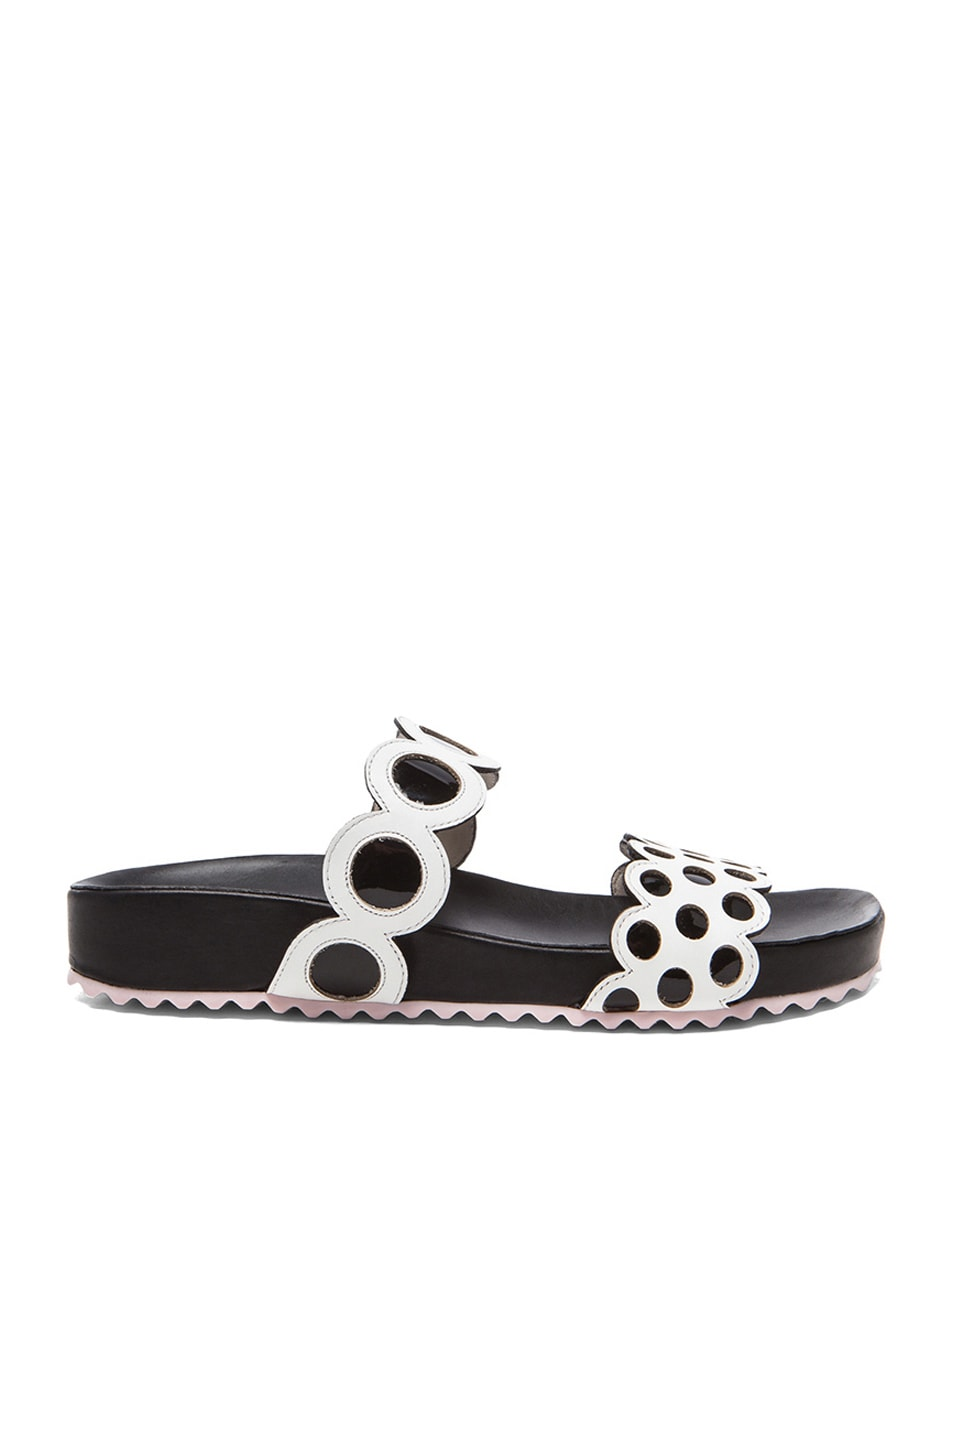 from china cheap online clearance cheap real Sophia Webster Yayoi Patent Leather Sandals for cheap discount buy cheap low price under $60 online vv7dC